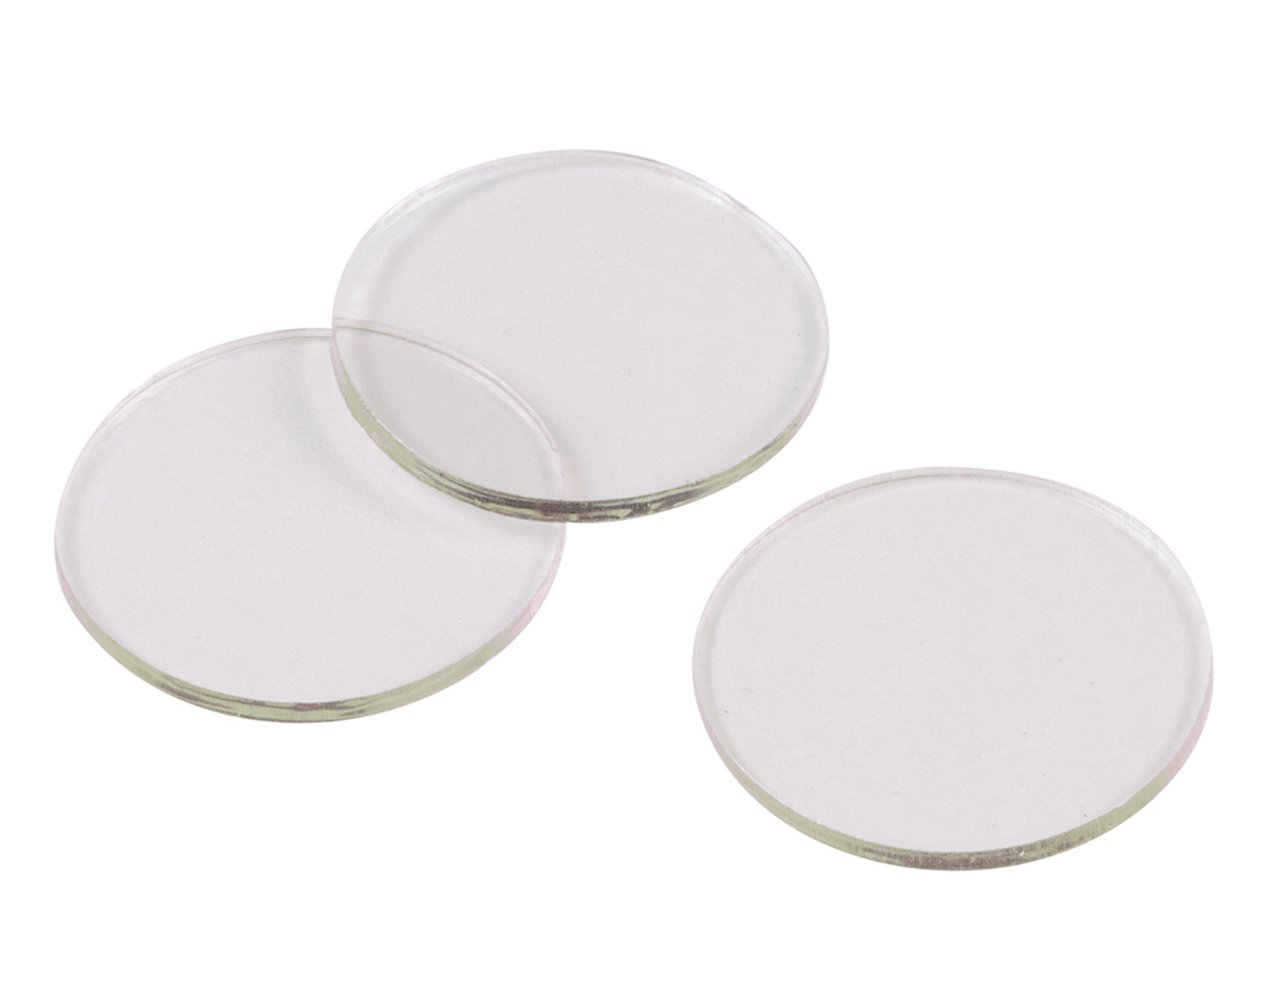 Shepherd Hardware 9966 3/4-Inch SurfaceGard Non-Adhesive Round Transparent Bumper Pads, 10-Count